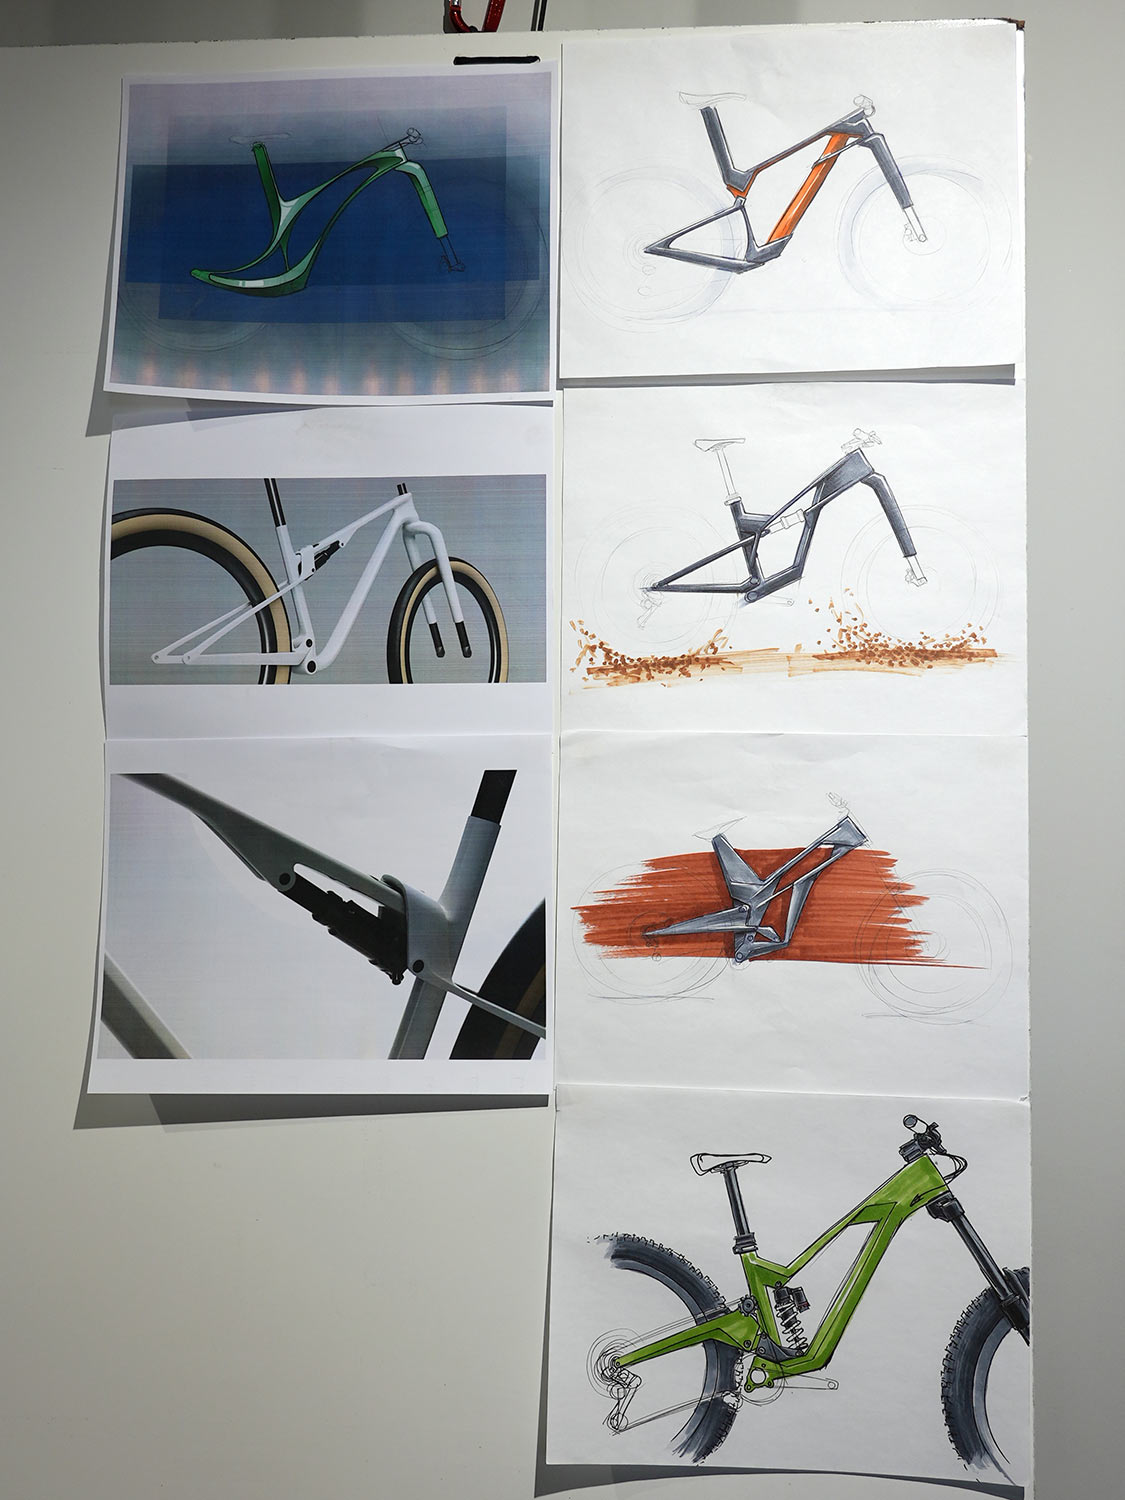 bicycle concept drawings for road and gravel bikes and mountain bikes from fezzari